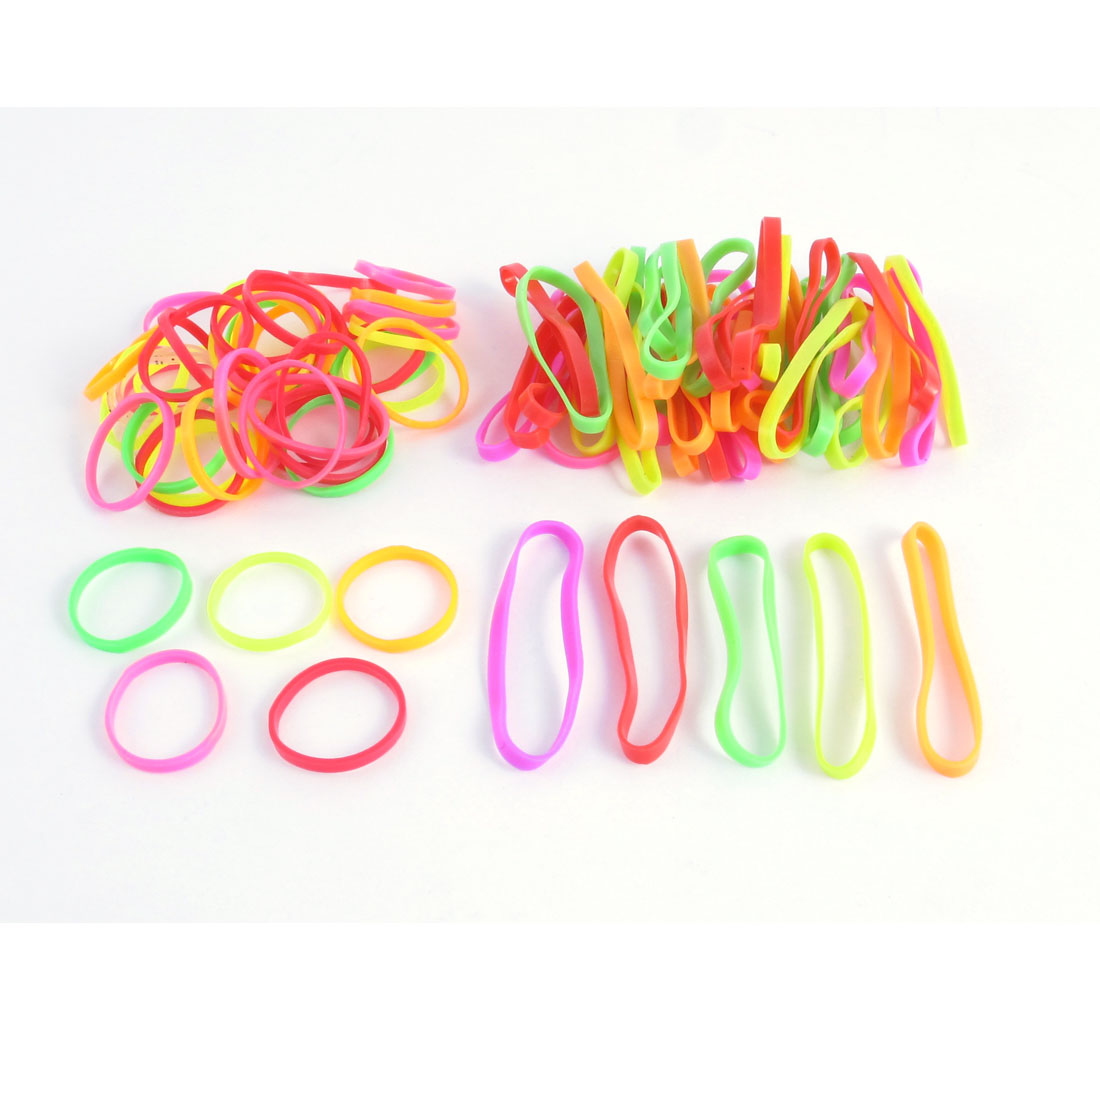 Unique Bargains 87 Pcs Rubber Elastic Hair Ties Bands Ponytail Braids Holder Hair Bands Multicolor